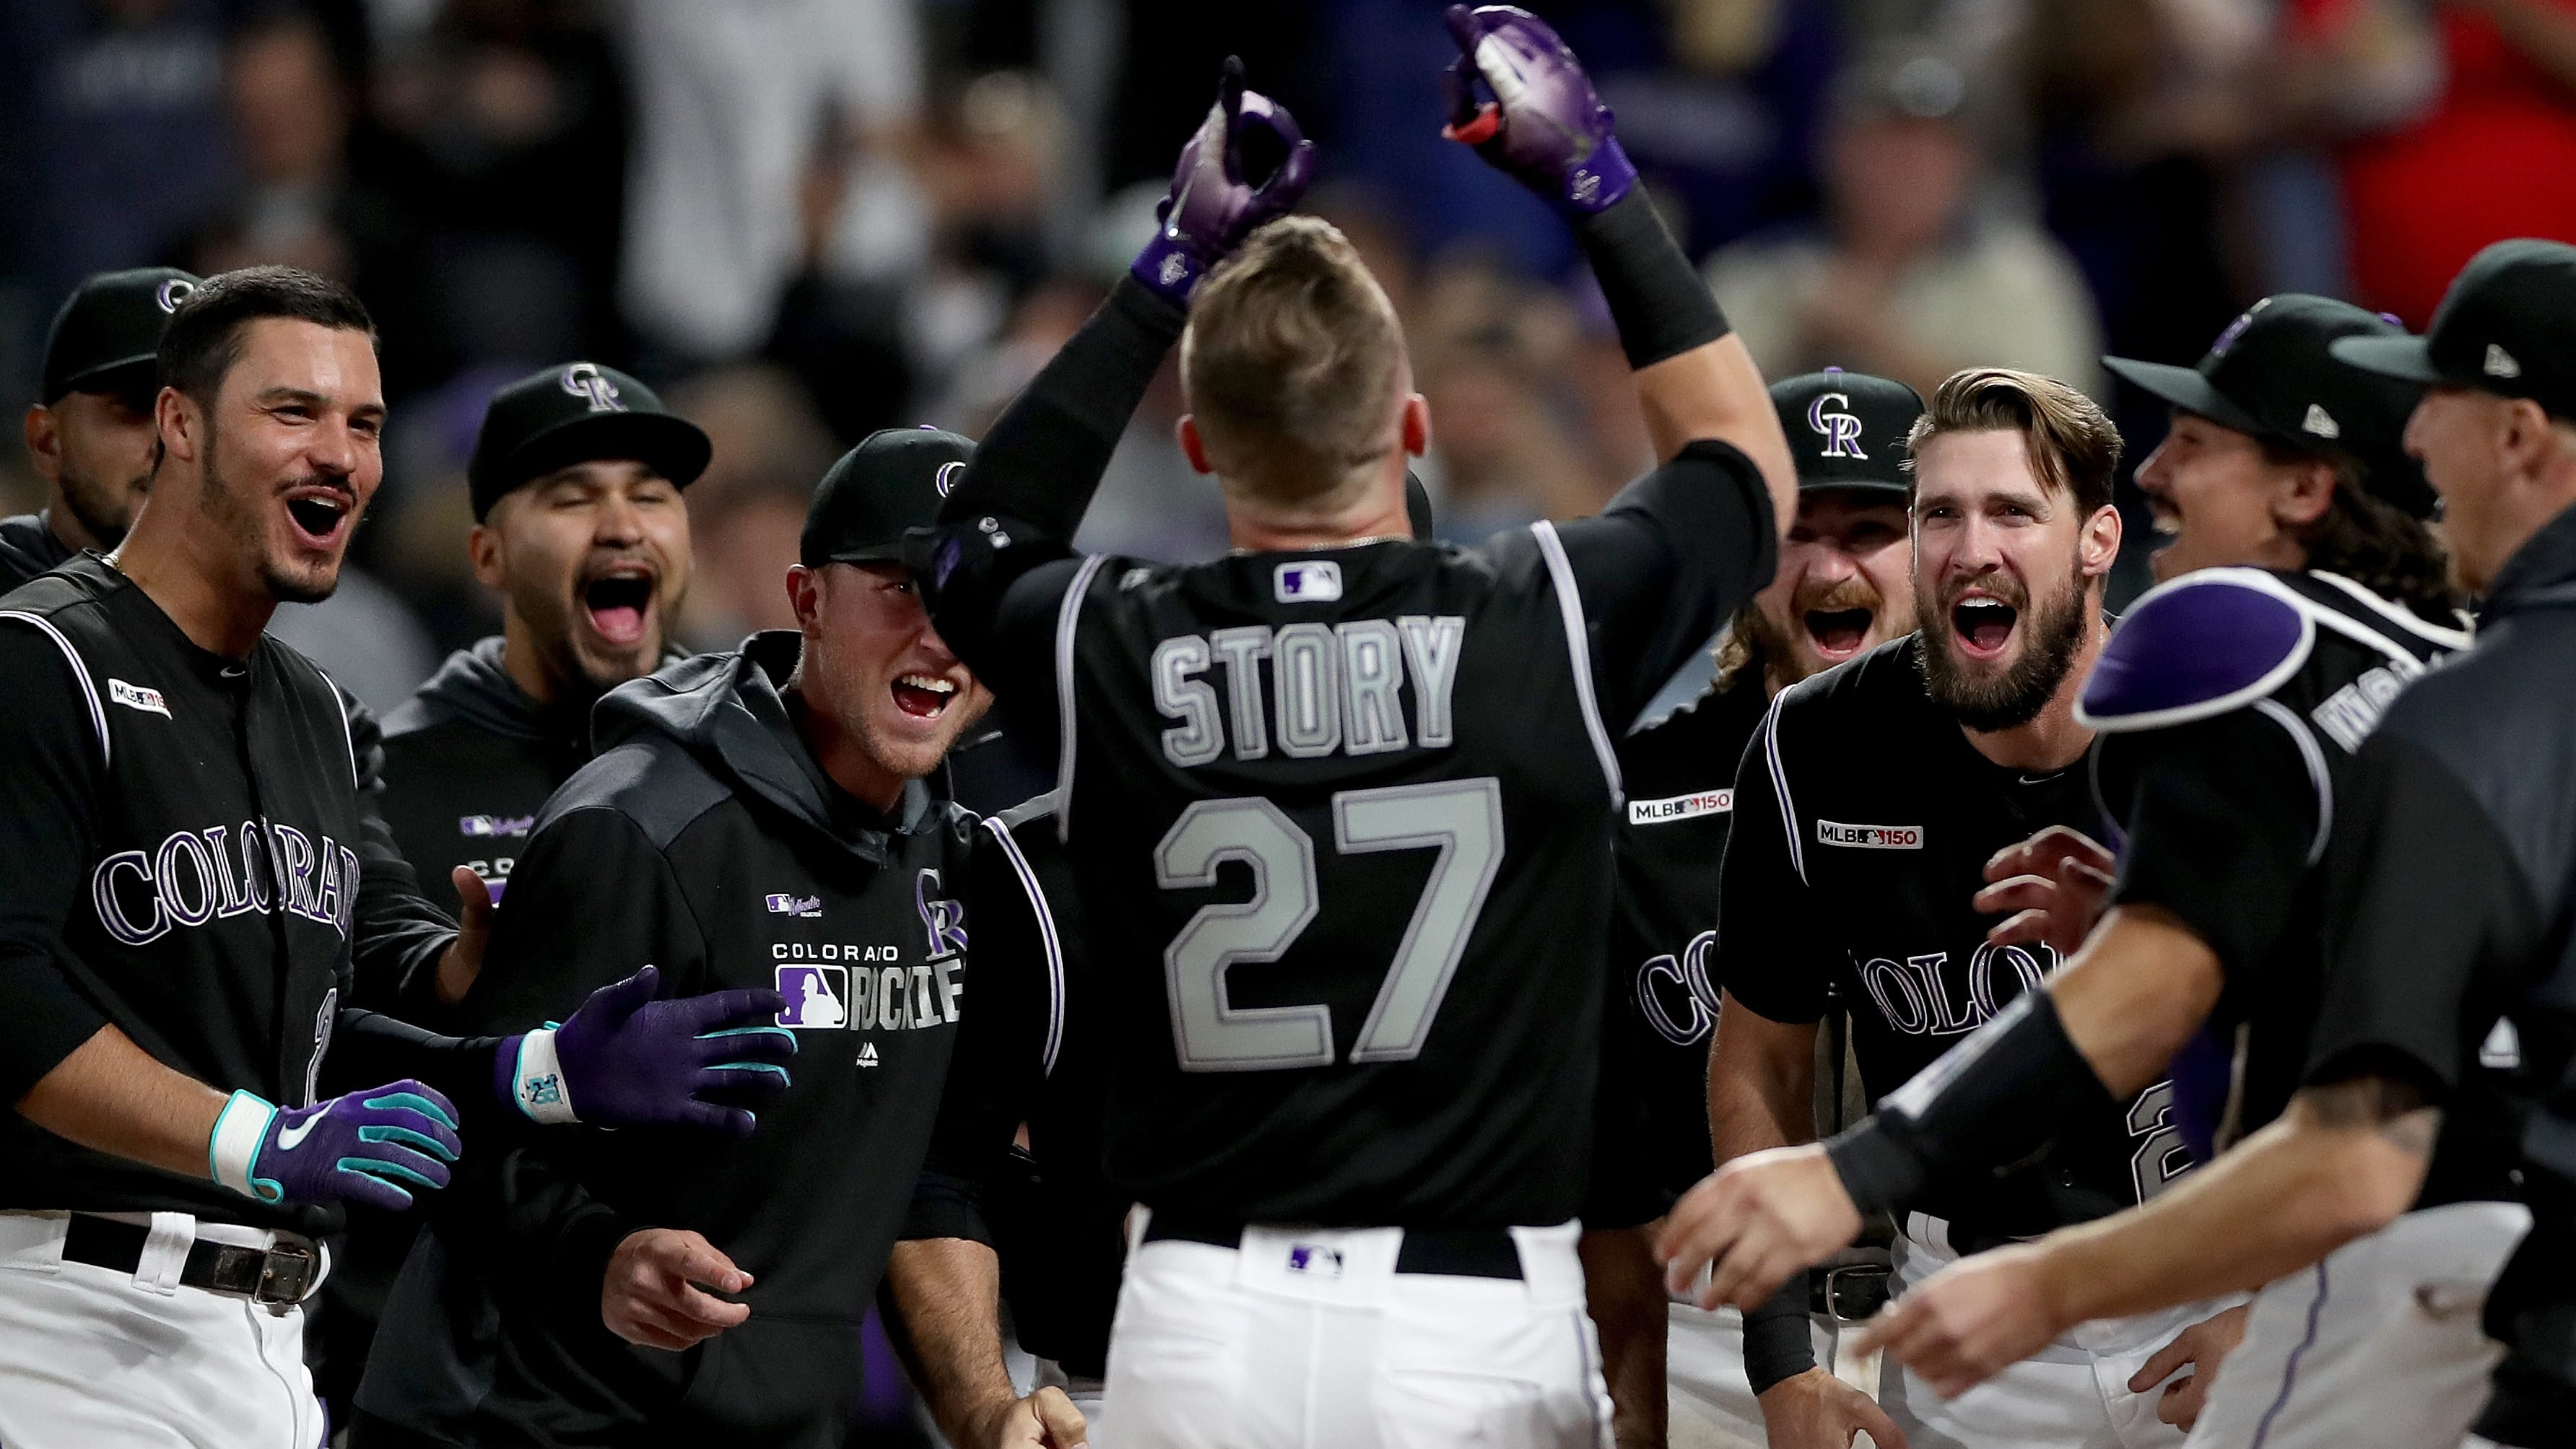 DENVER, COLORADO - MAY 24: Trevor Story #27 of the Colorado Rockies is met at the plate by his teammates after hitting a 2 RBI walk off home run in the ninth inning against the Baltimore Orioles at Coors Field on May 24, 2019 in Denver, Colorado. (Photo by Matthew Stockman/Getty Images)